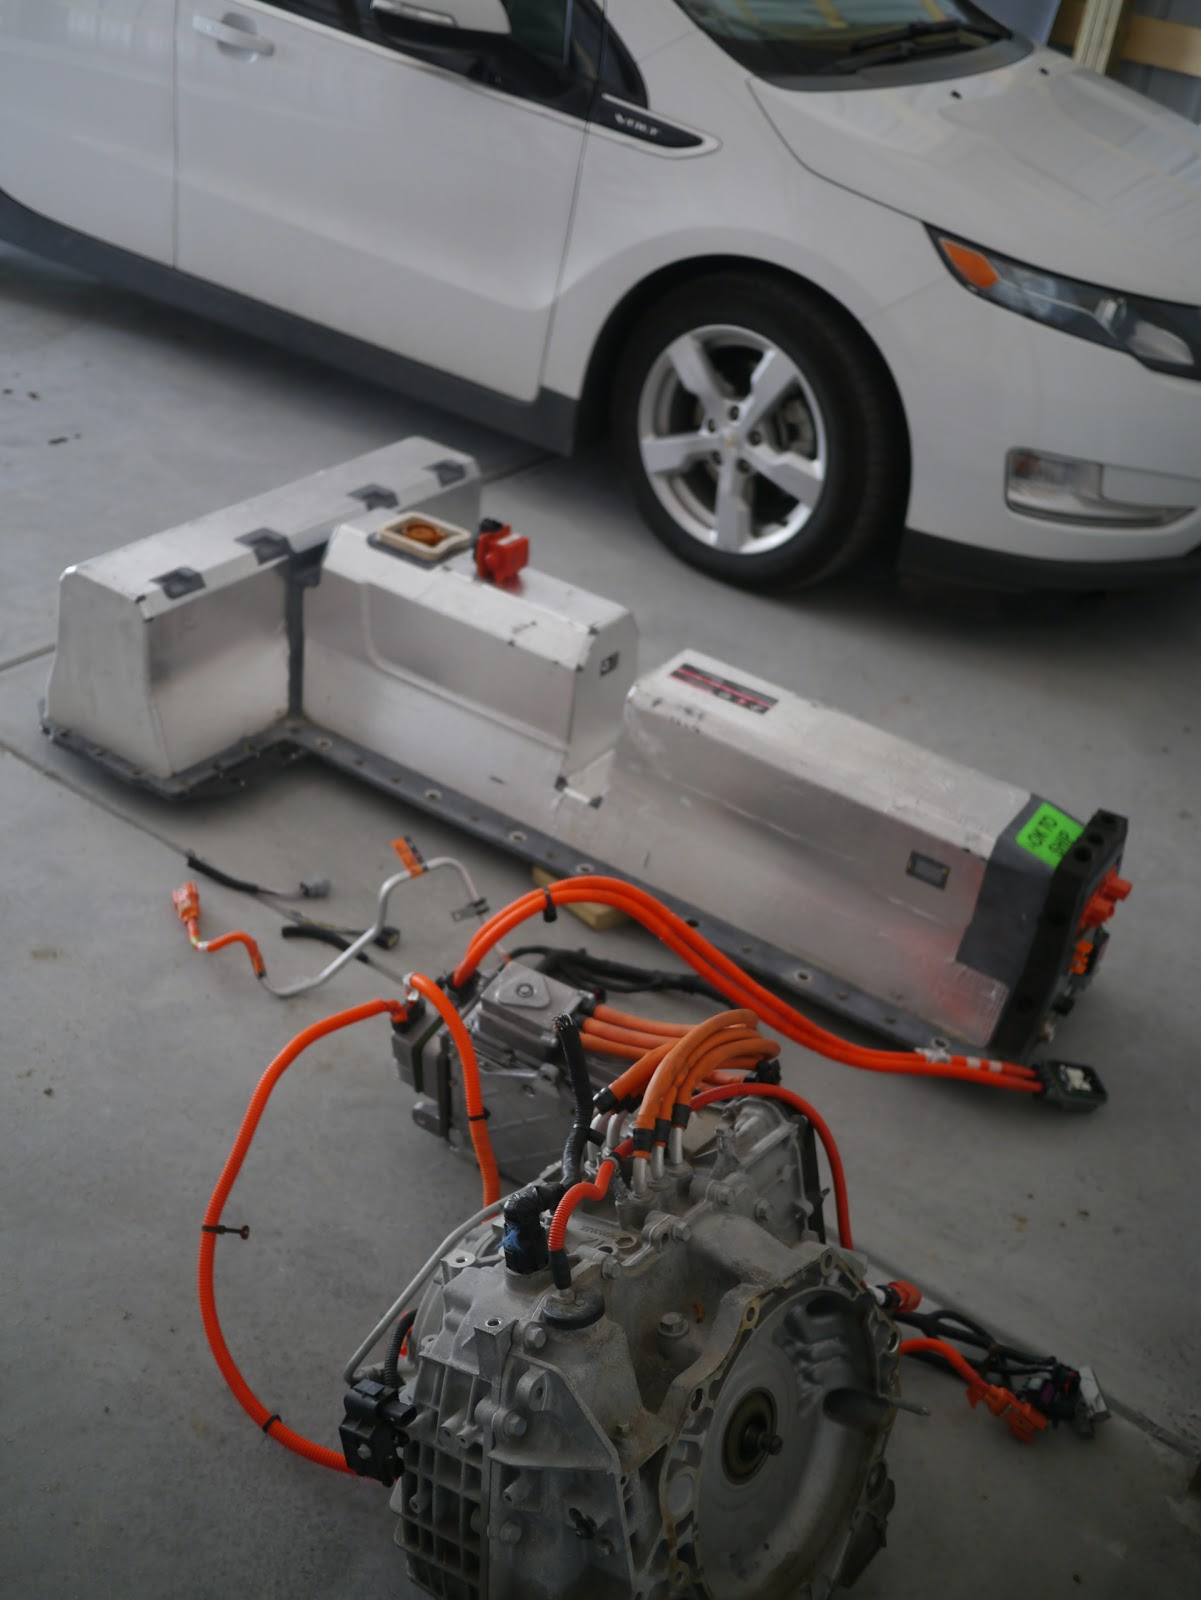 Attempting to hack a Chevy Volt Drivetrain | DIY Electric Car ForumsDIY Electric Car